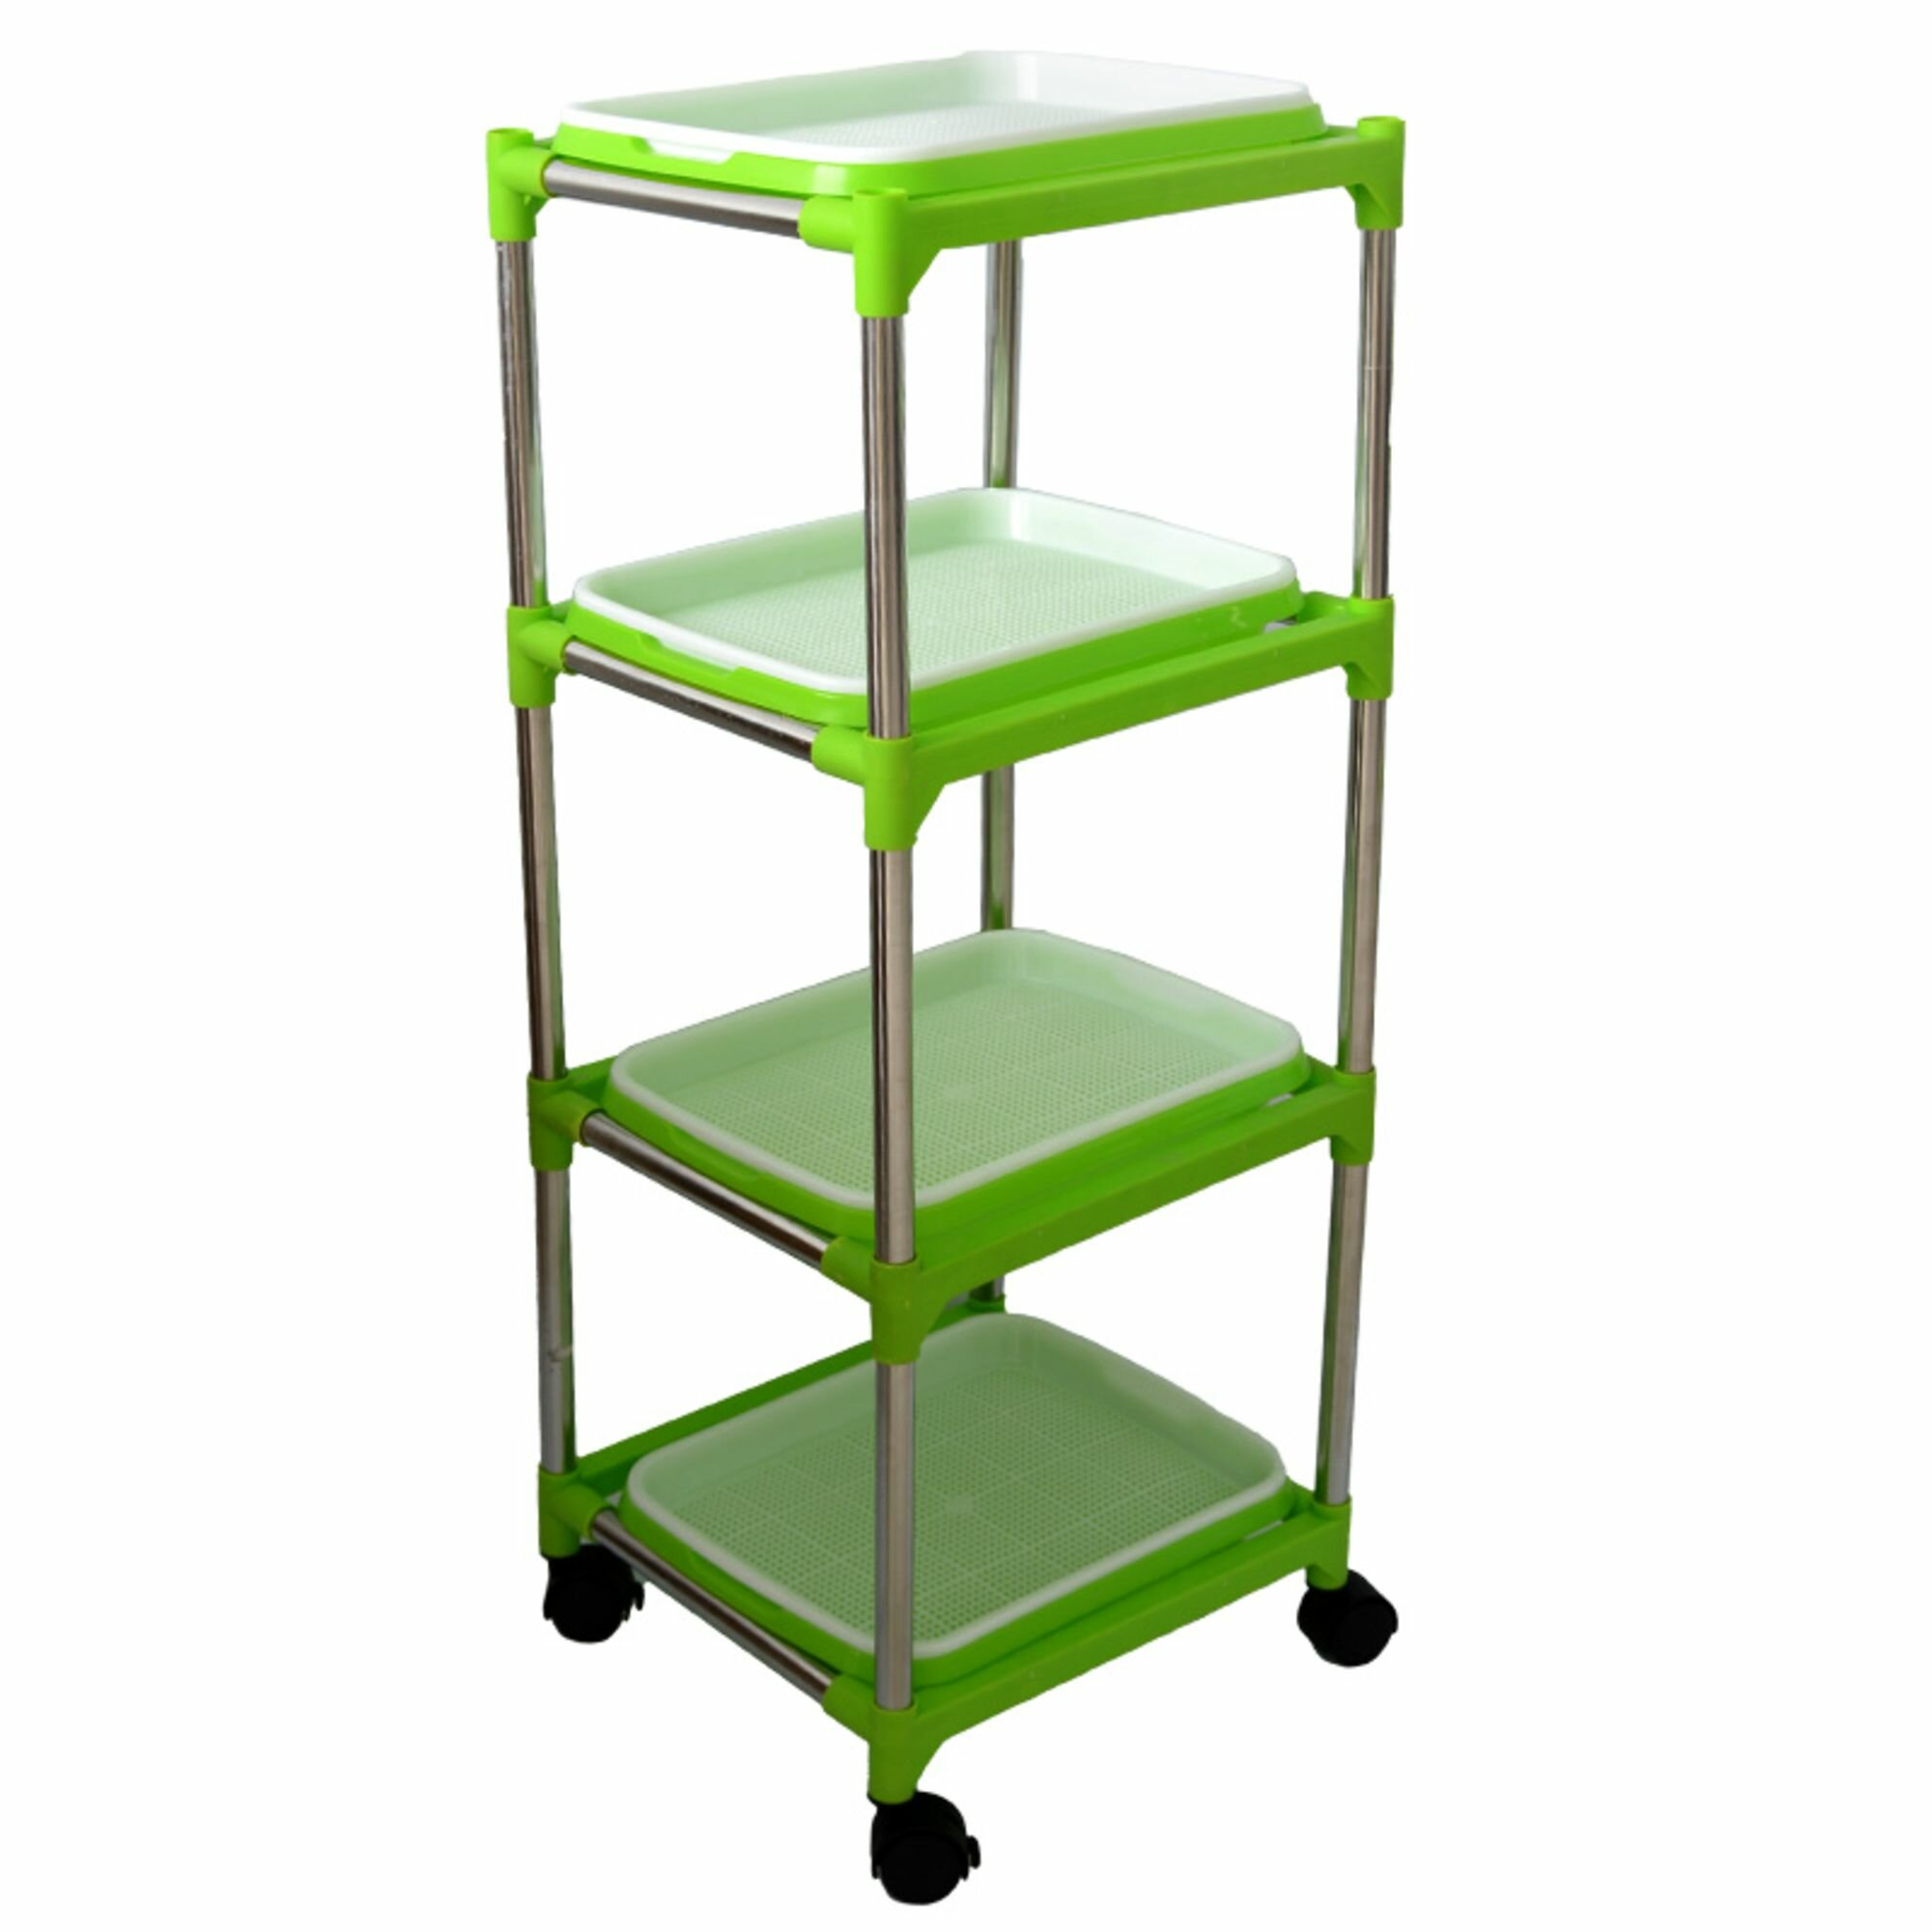 Porpora Seed Sprouter Hydroponic Unit Wayfair